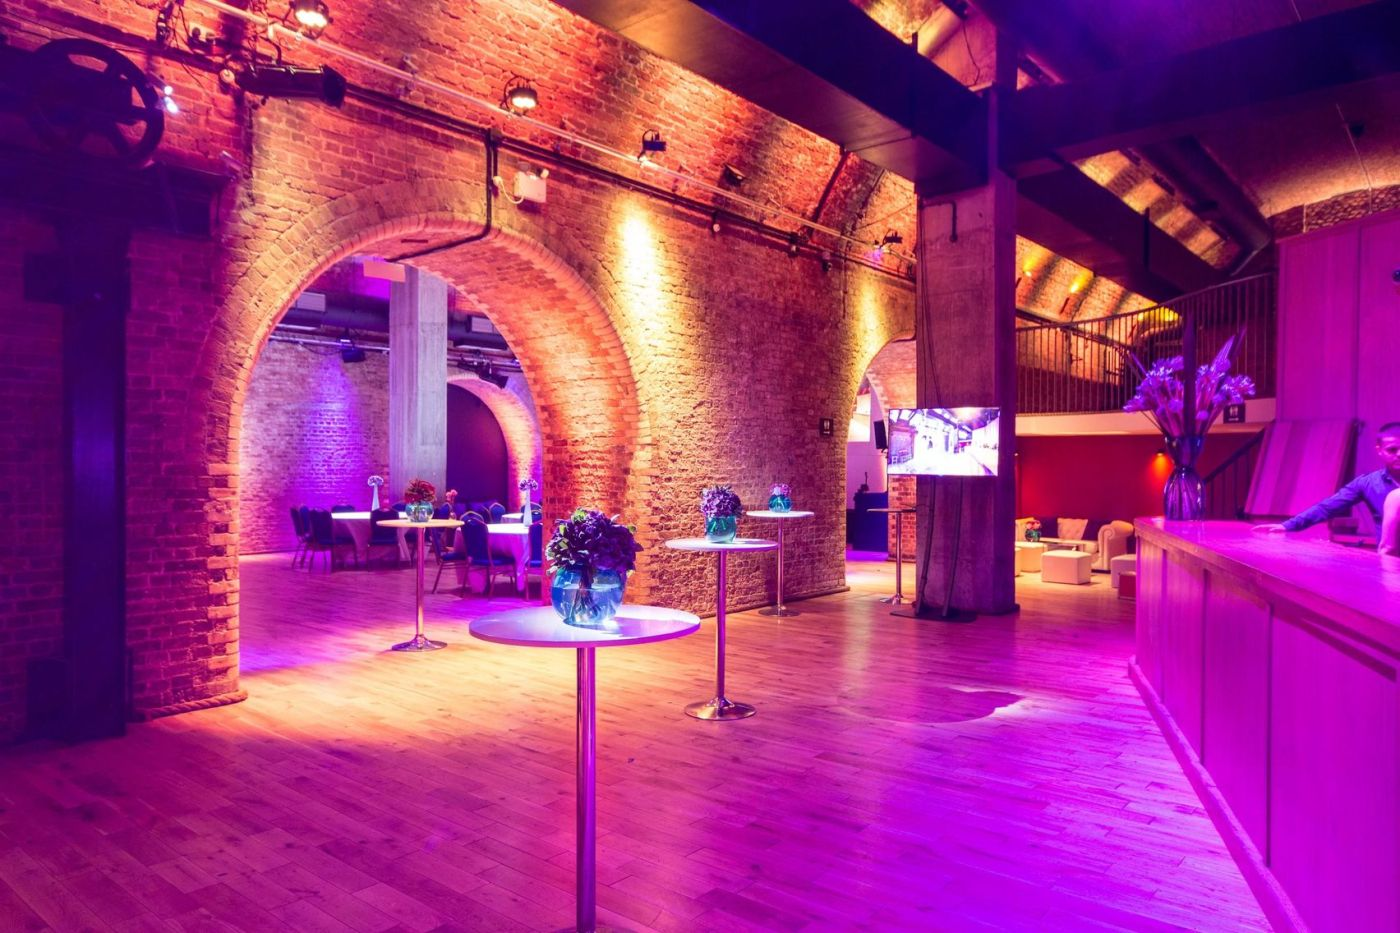 A large event space with exposed bricks and arches